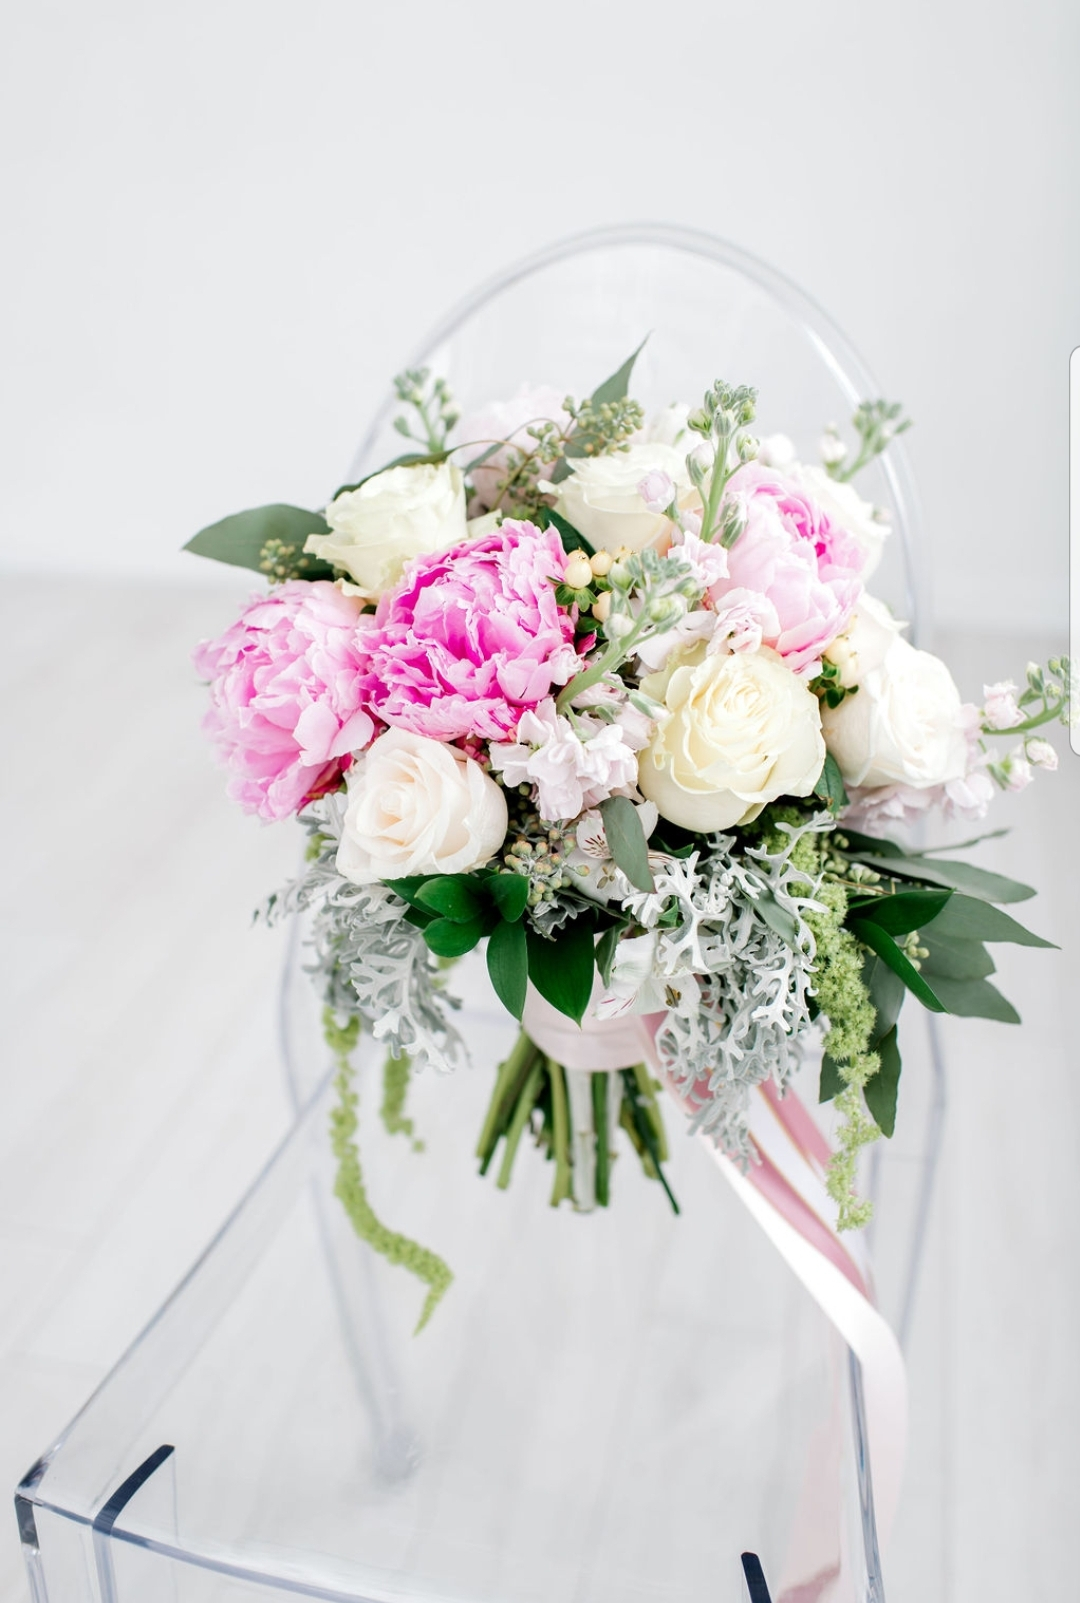 White and pink bridal leksi skerritt pho